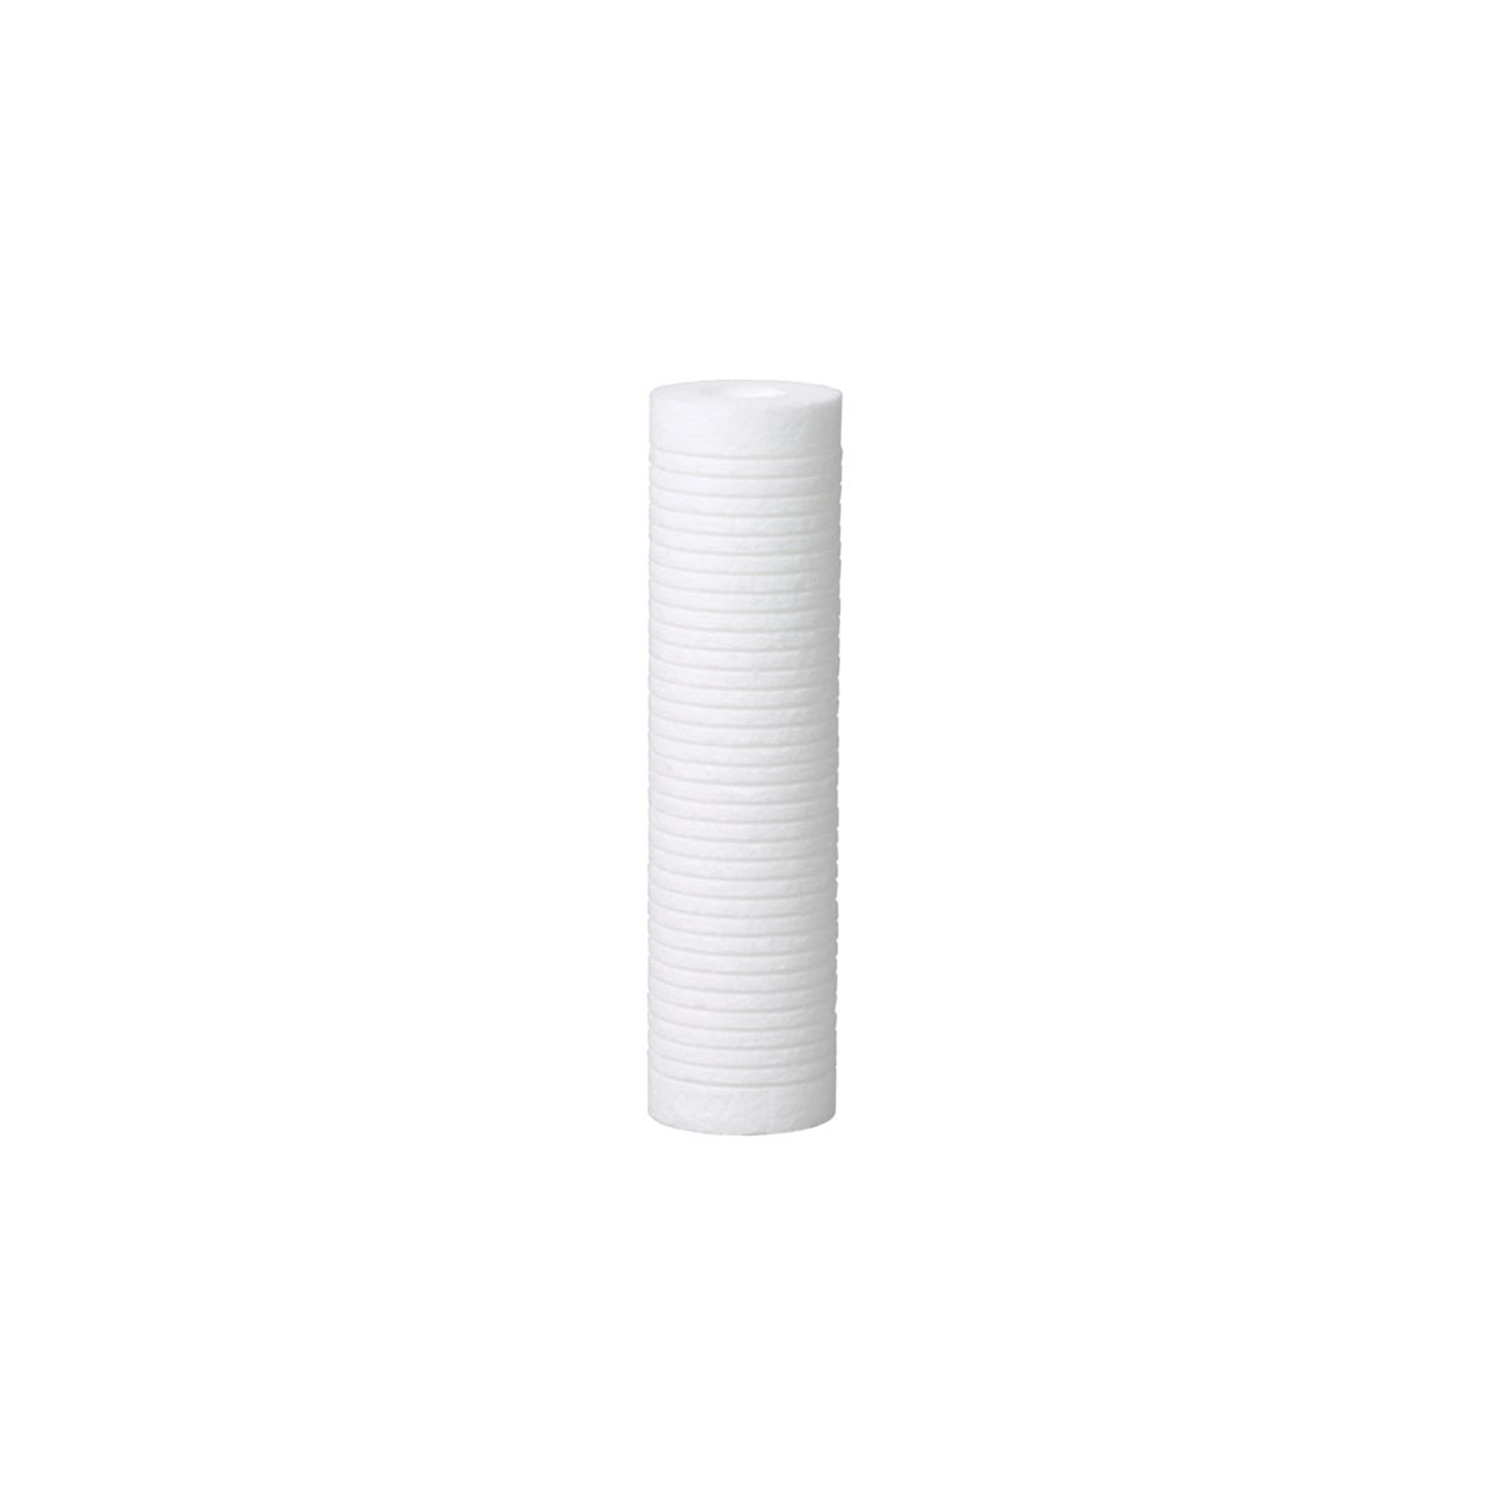 3M  5 Micron  Replacement Water Filter  For Whole House